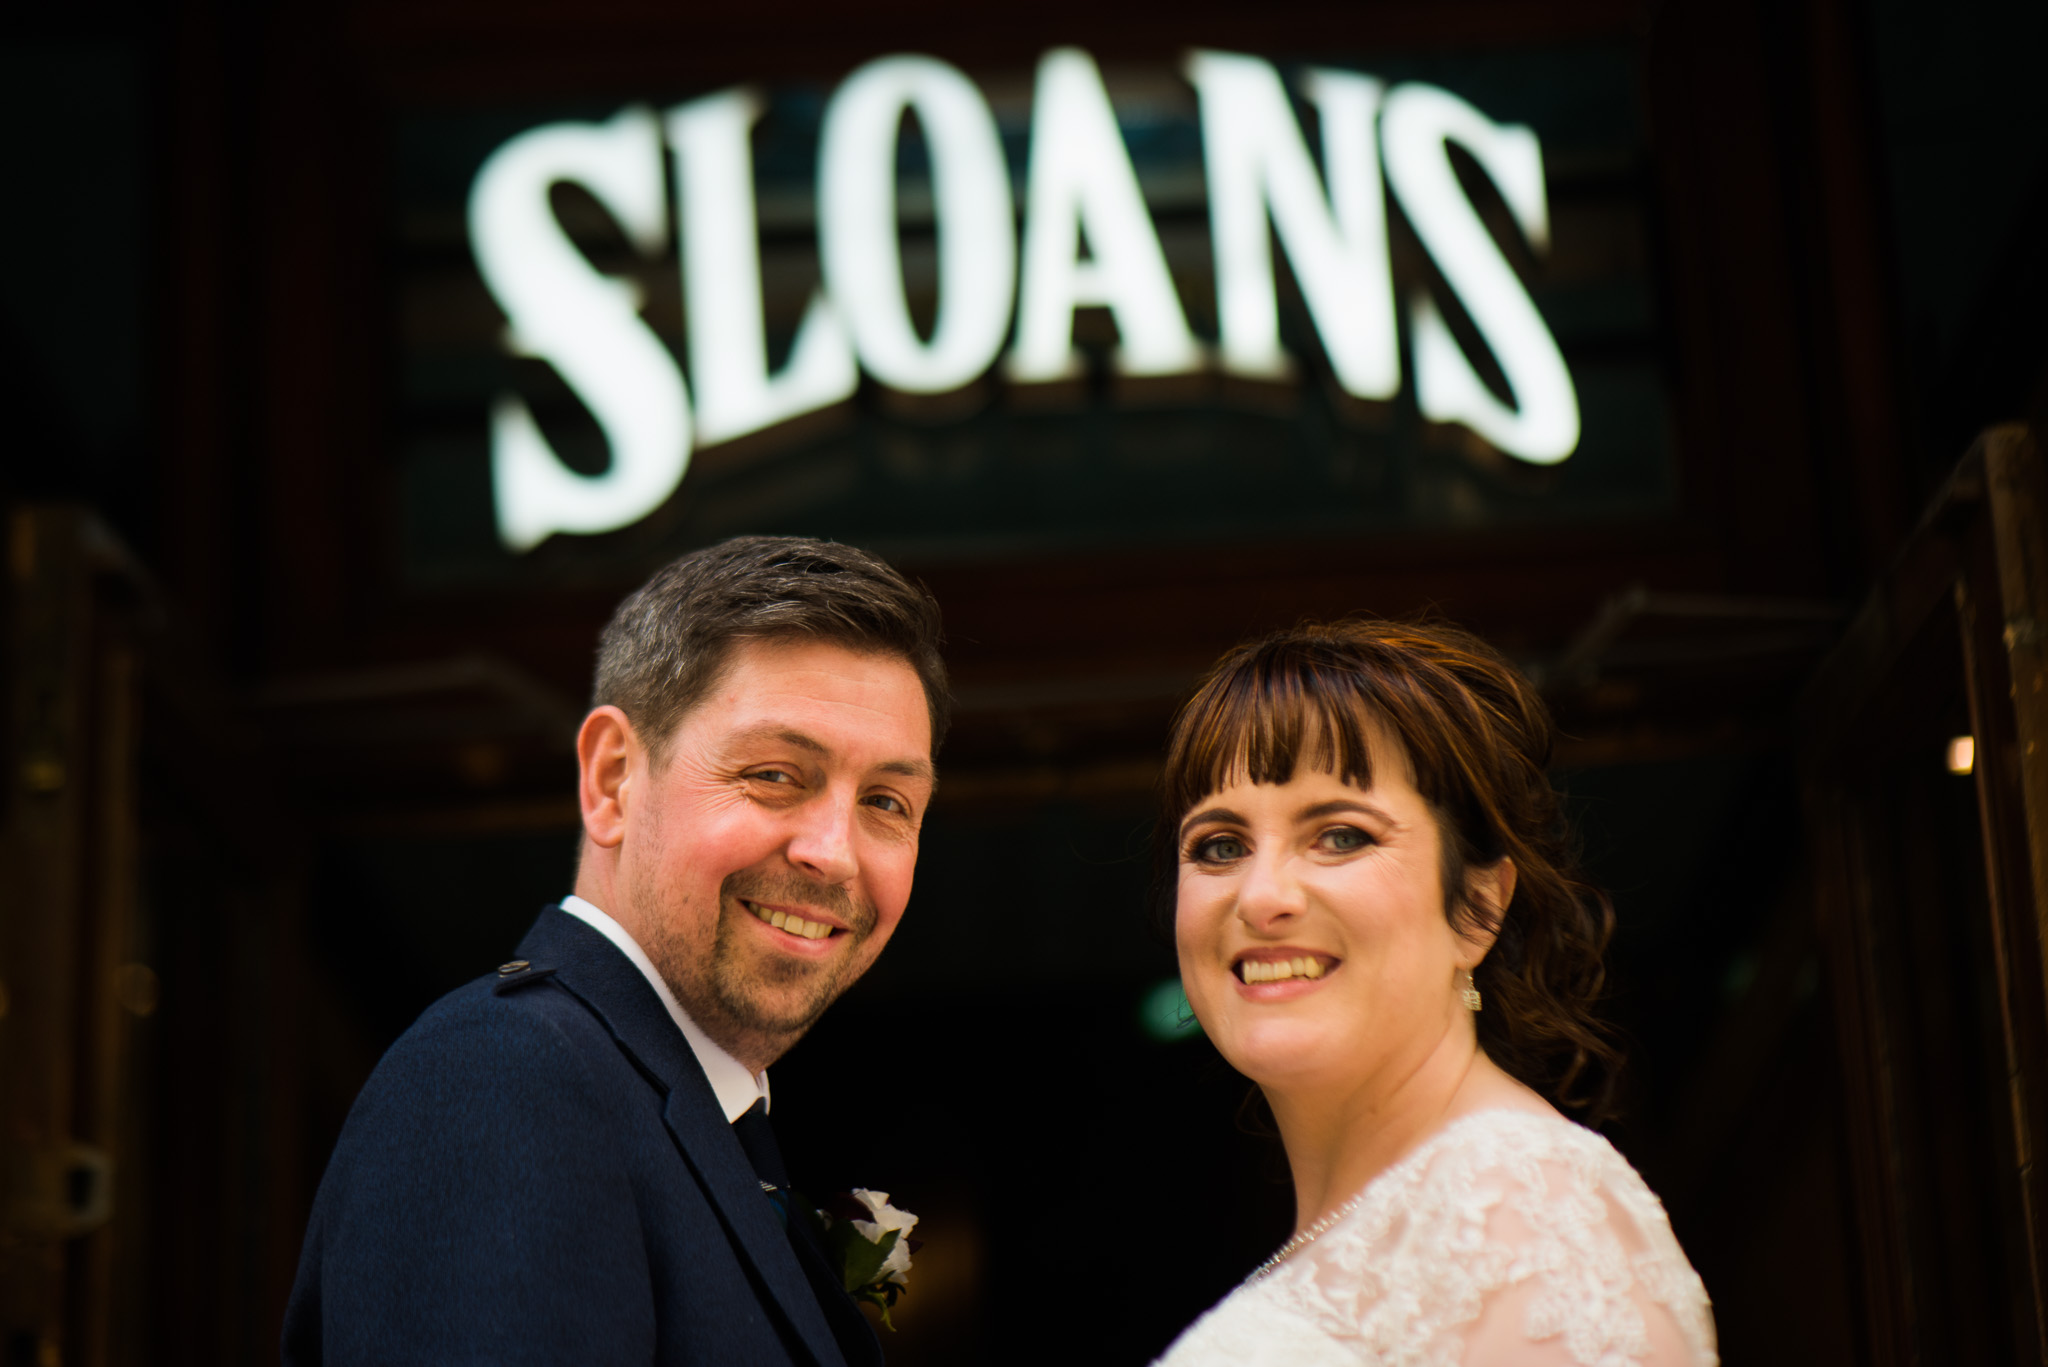 Sloans Wedding